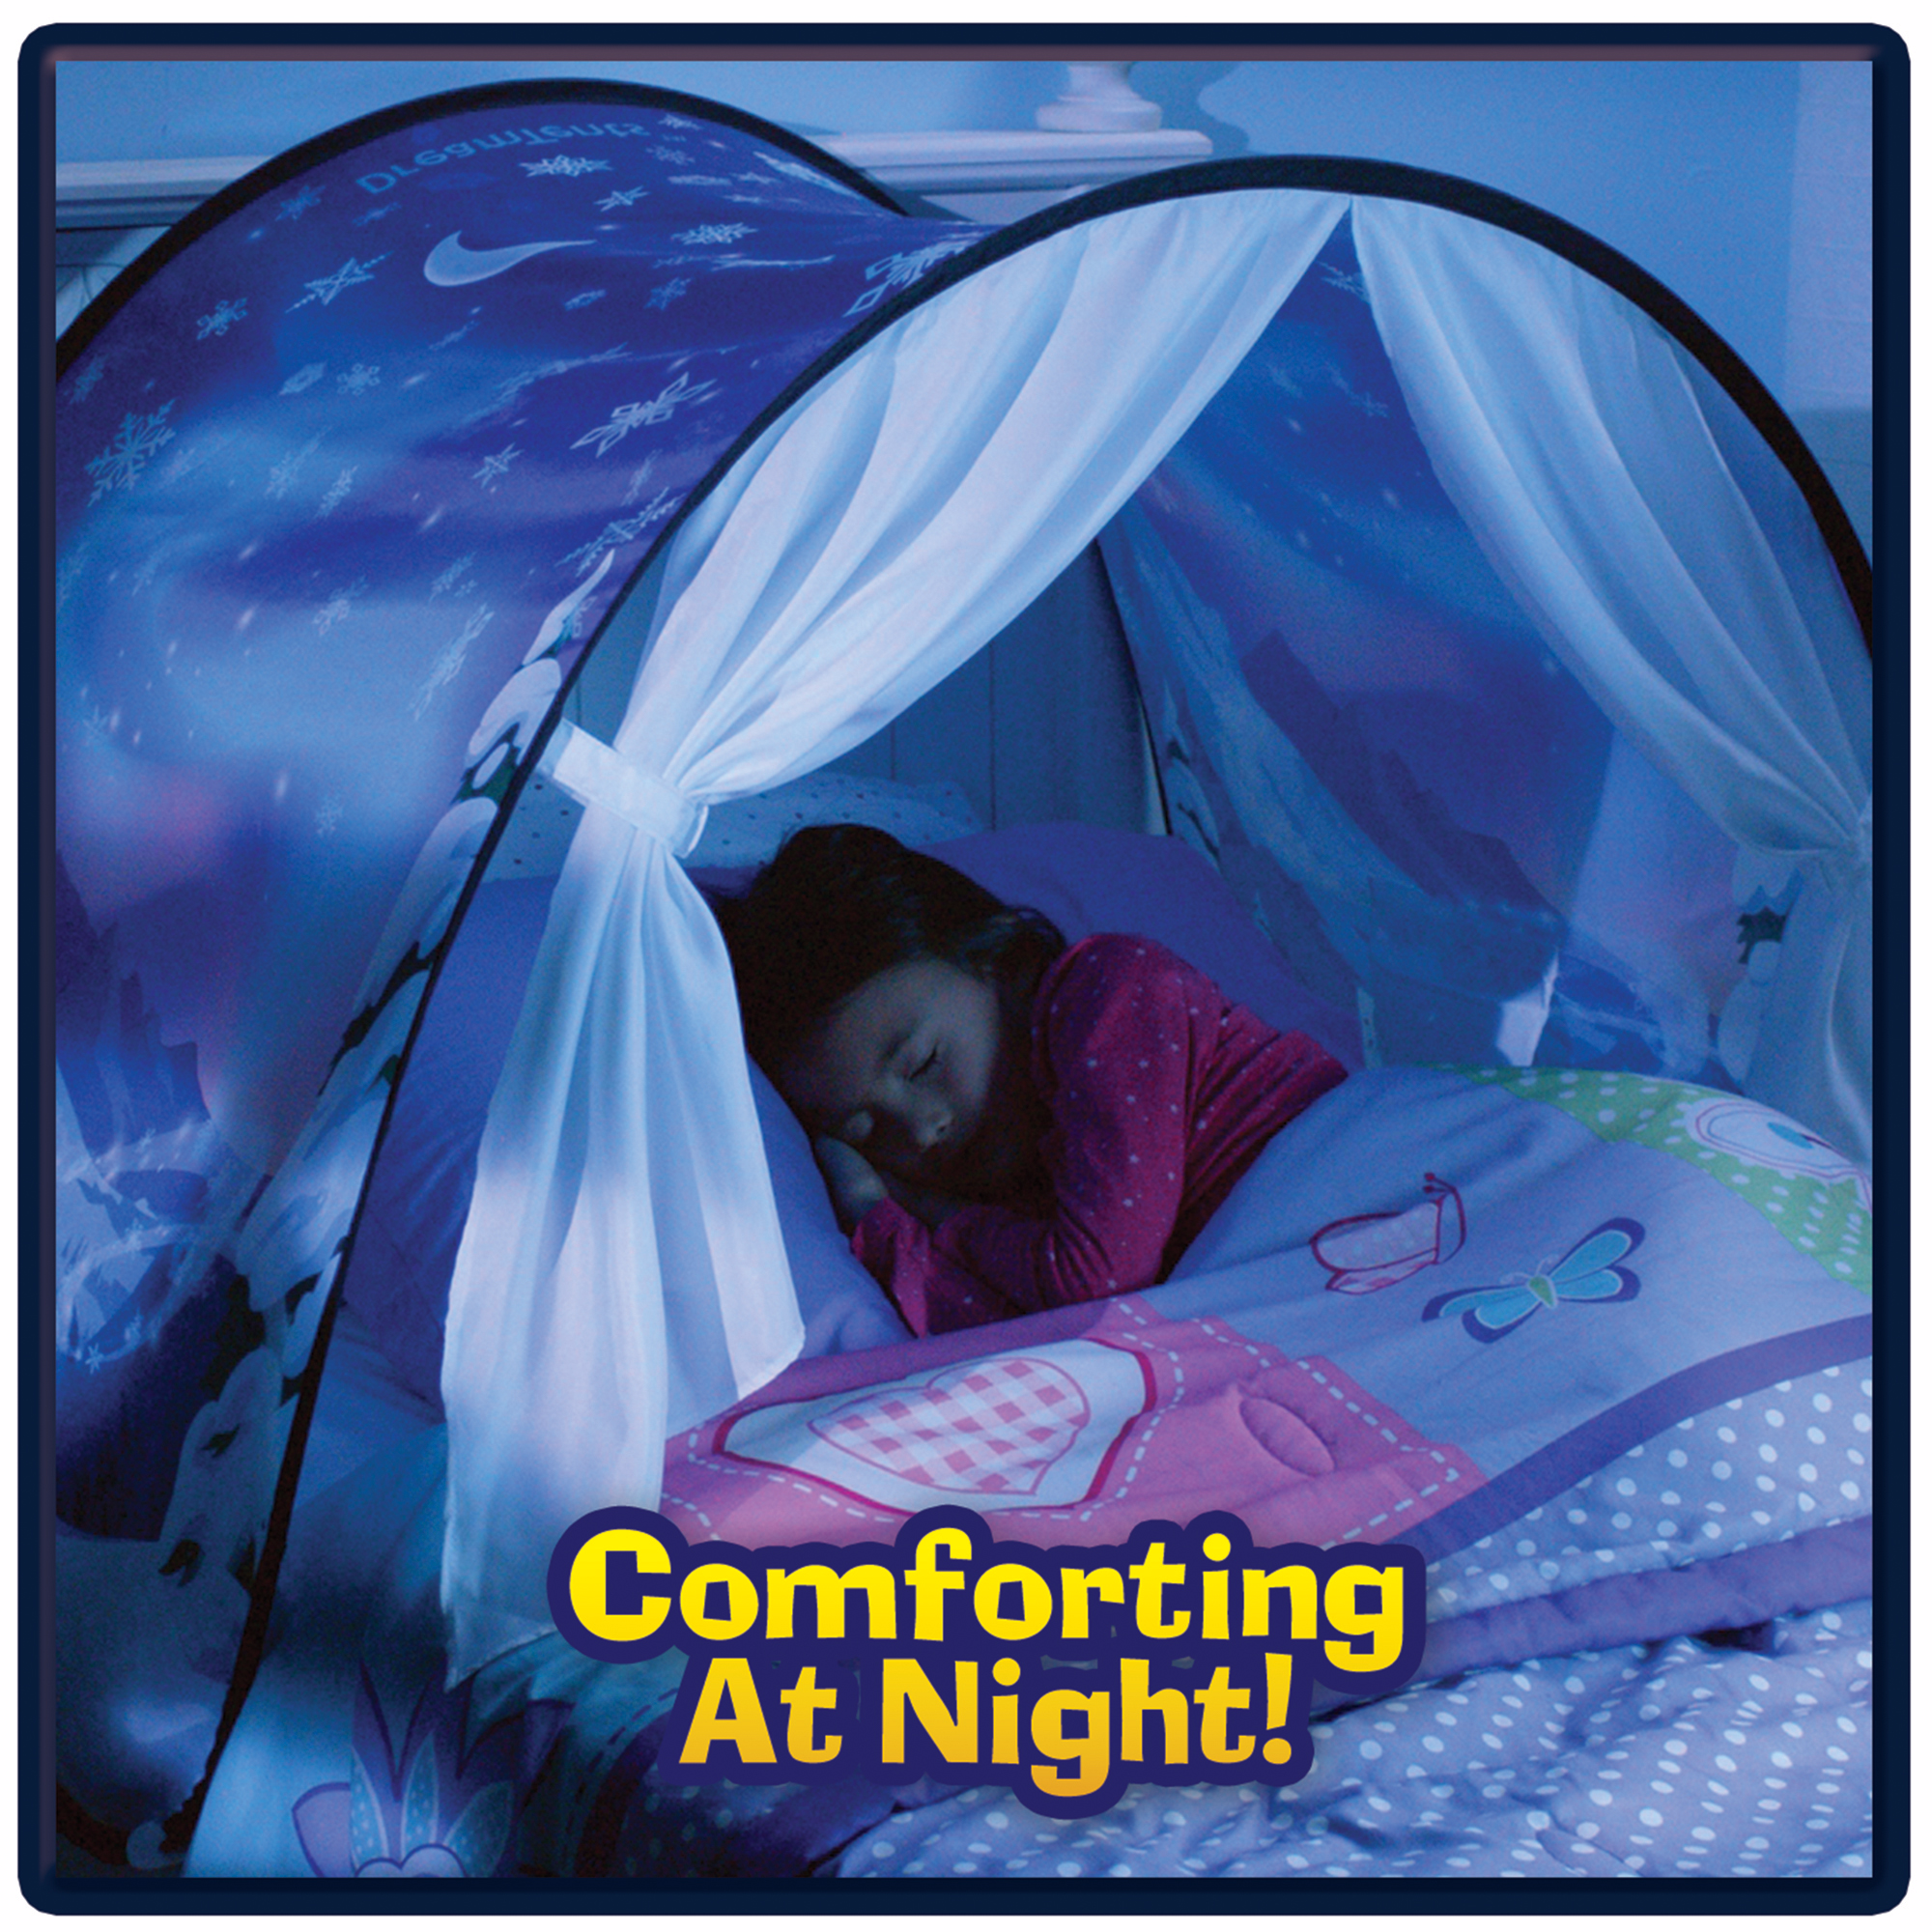 Innovative Magical Dream Tents Kids Pop Up Bed Tent Kid Bedroom Playhouse Winter Wonderland Gift For  sc 1 st  Walmart & SUNNY SKY Play Tents - Walmart.com